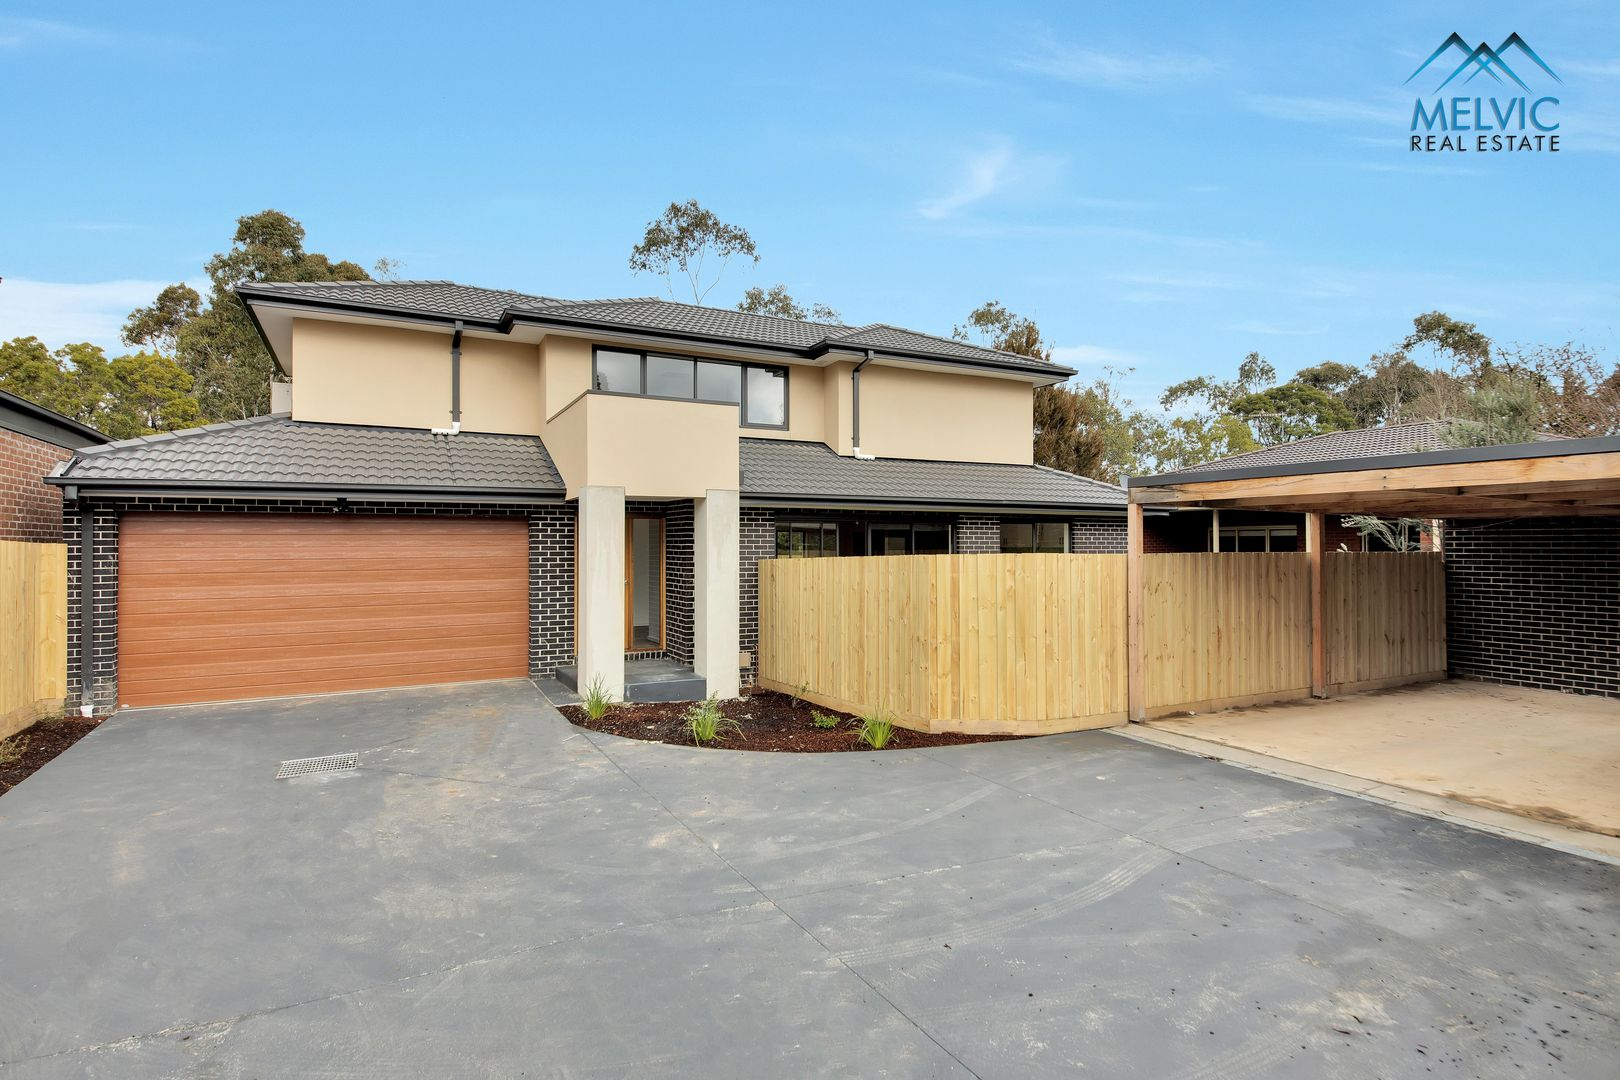 83 A Esther Crescent, Mooroolbark VIC 3138, Image 0